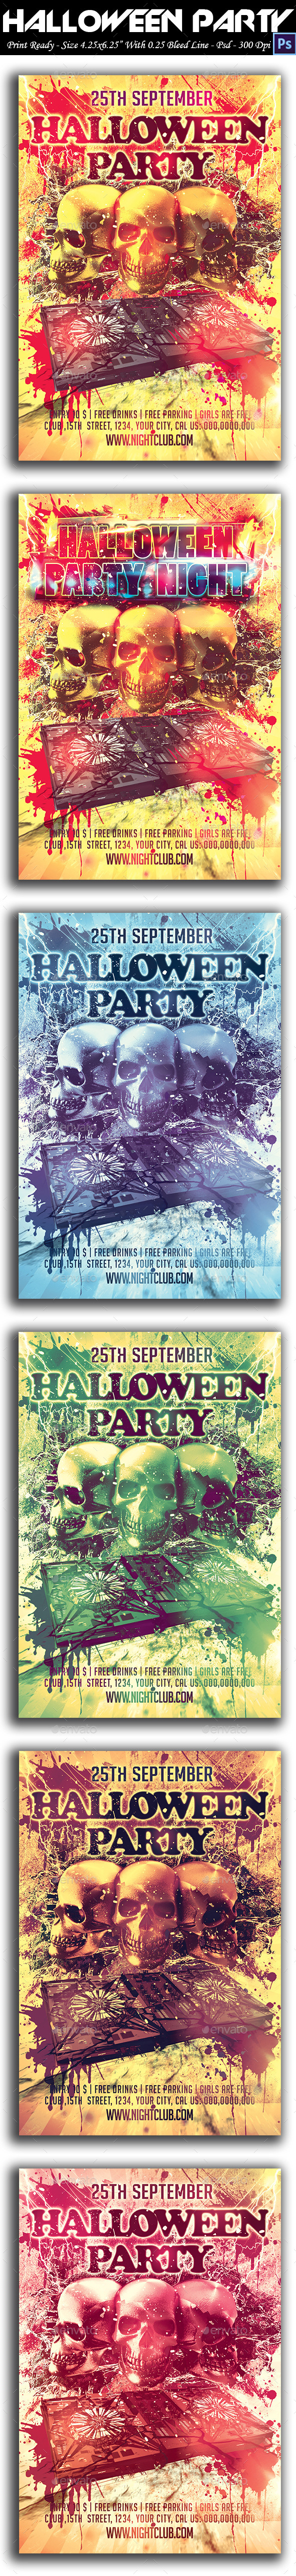 GraphicRiver Halloween Party Flyer 9010769